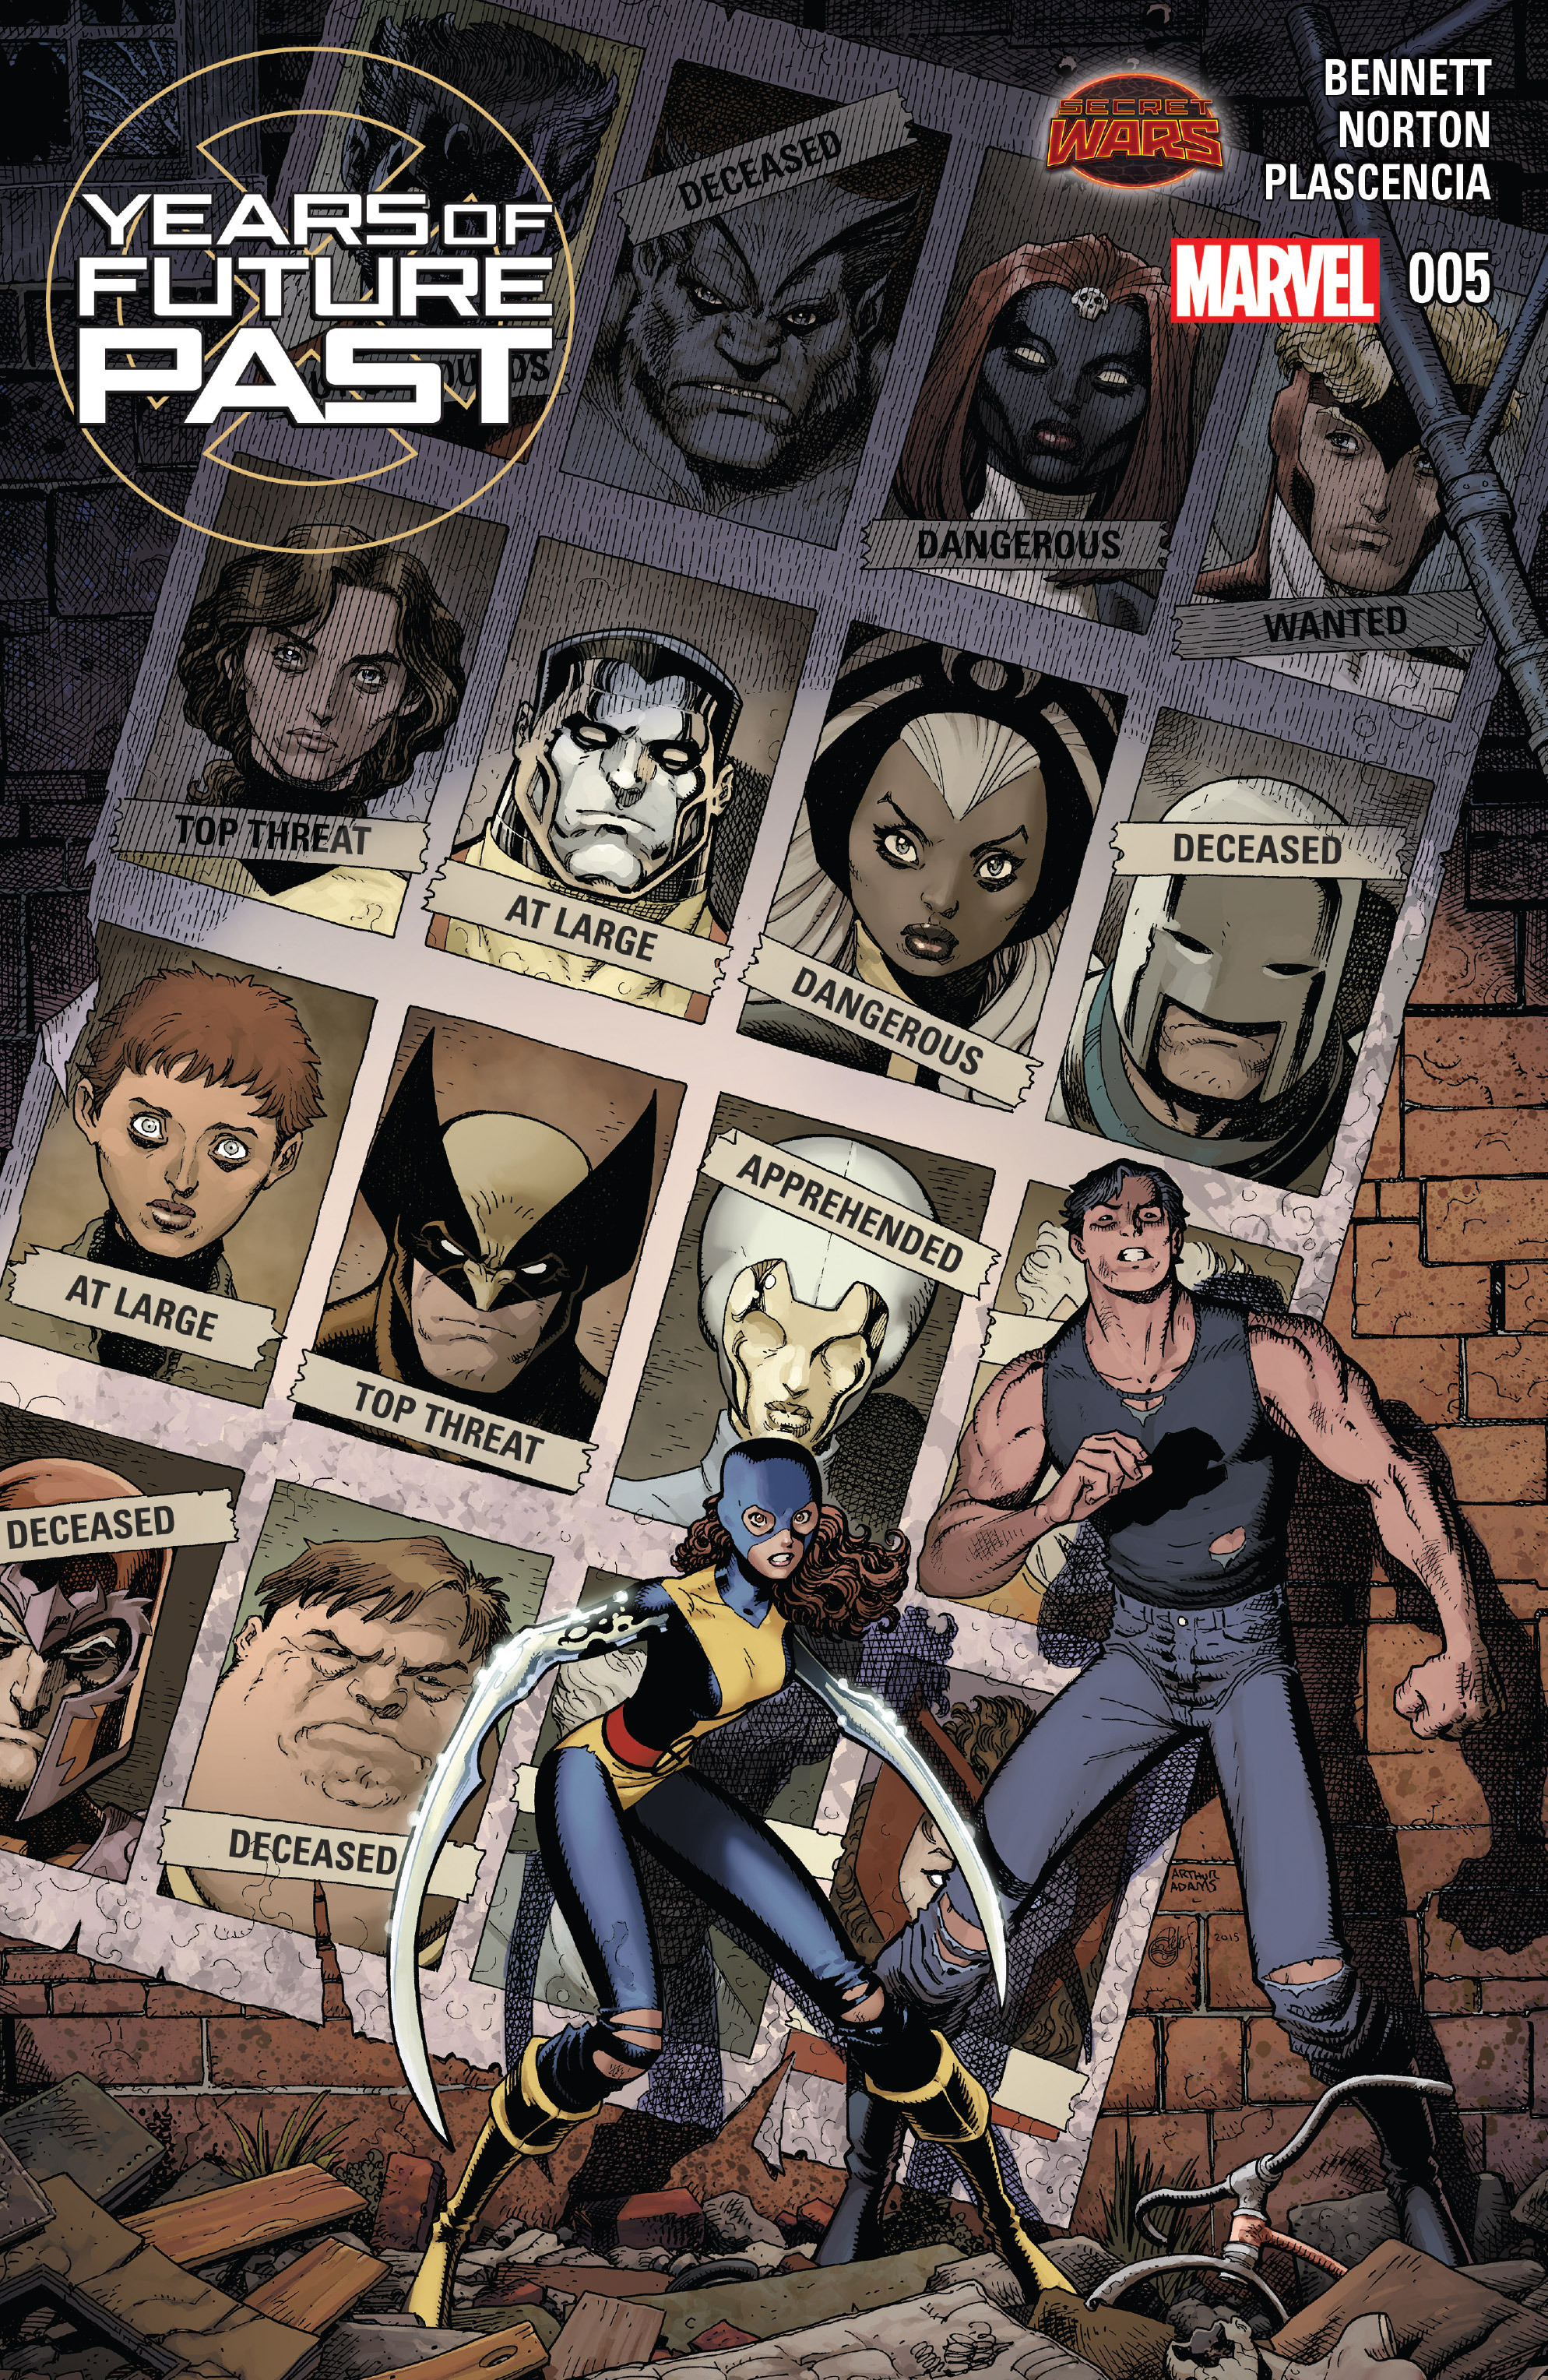 Years of Future Past | Viewcomic reading comics online for